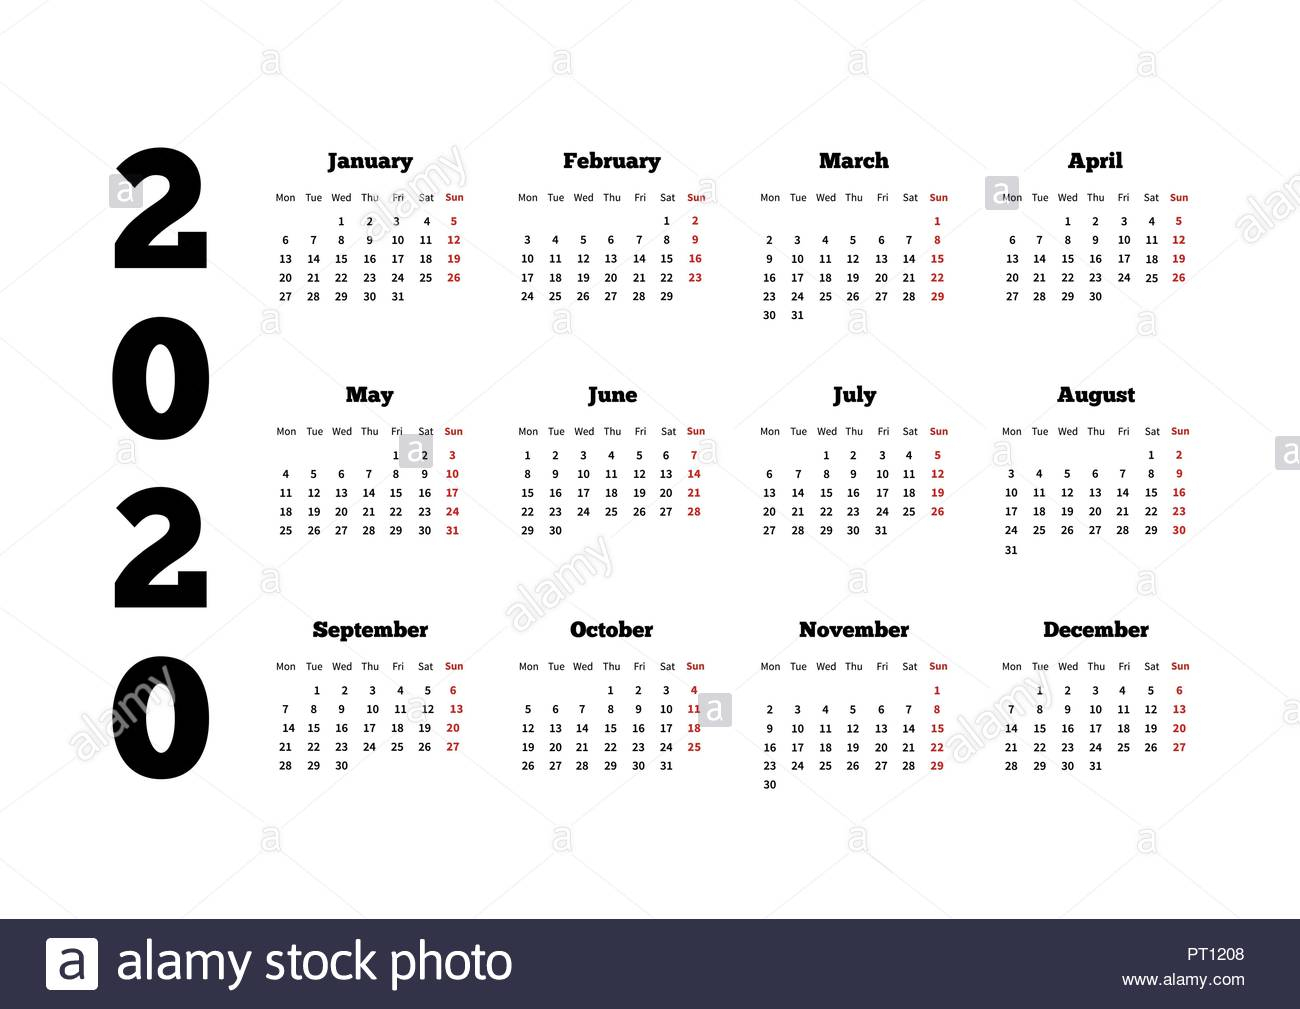 Calendar On 2020 Year With Week Starting From Monday, A4 Sheet Stock